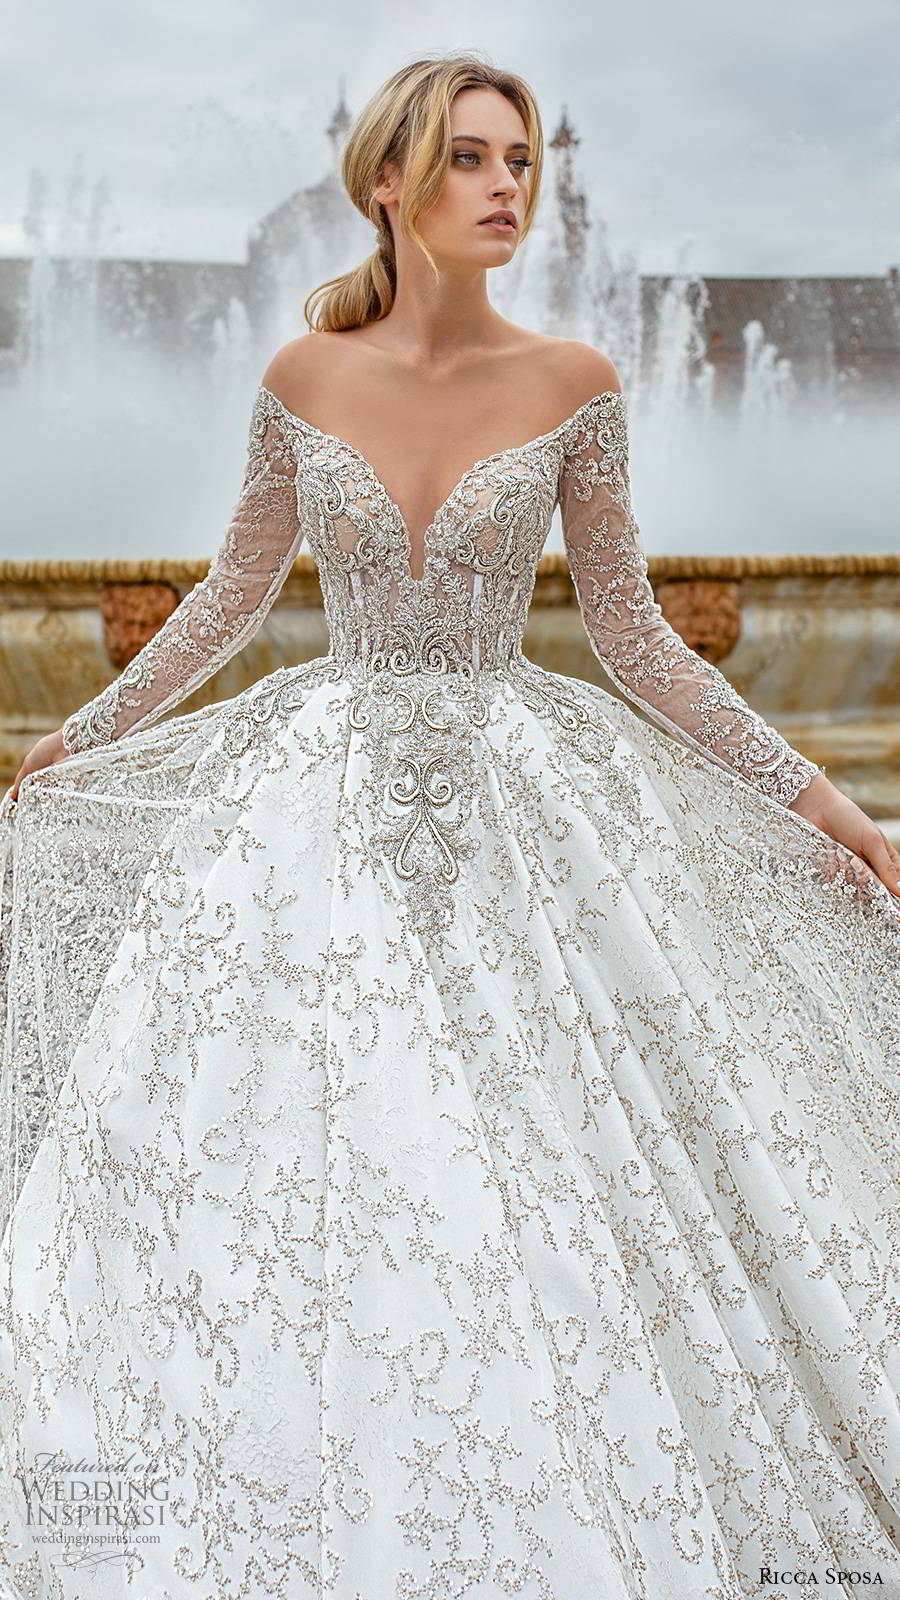 ricca sposa 2019 bridal sheer long sleeves off shoulder sweetheart neckline fully embellished elegant a line ball gown wedding dress v back cathedral train (8) zv